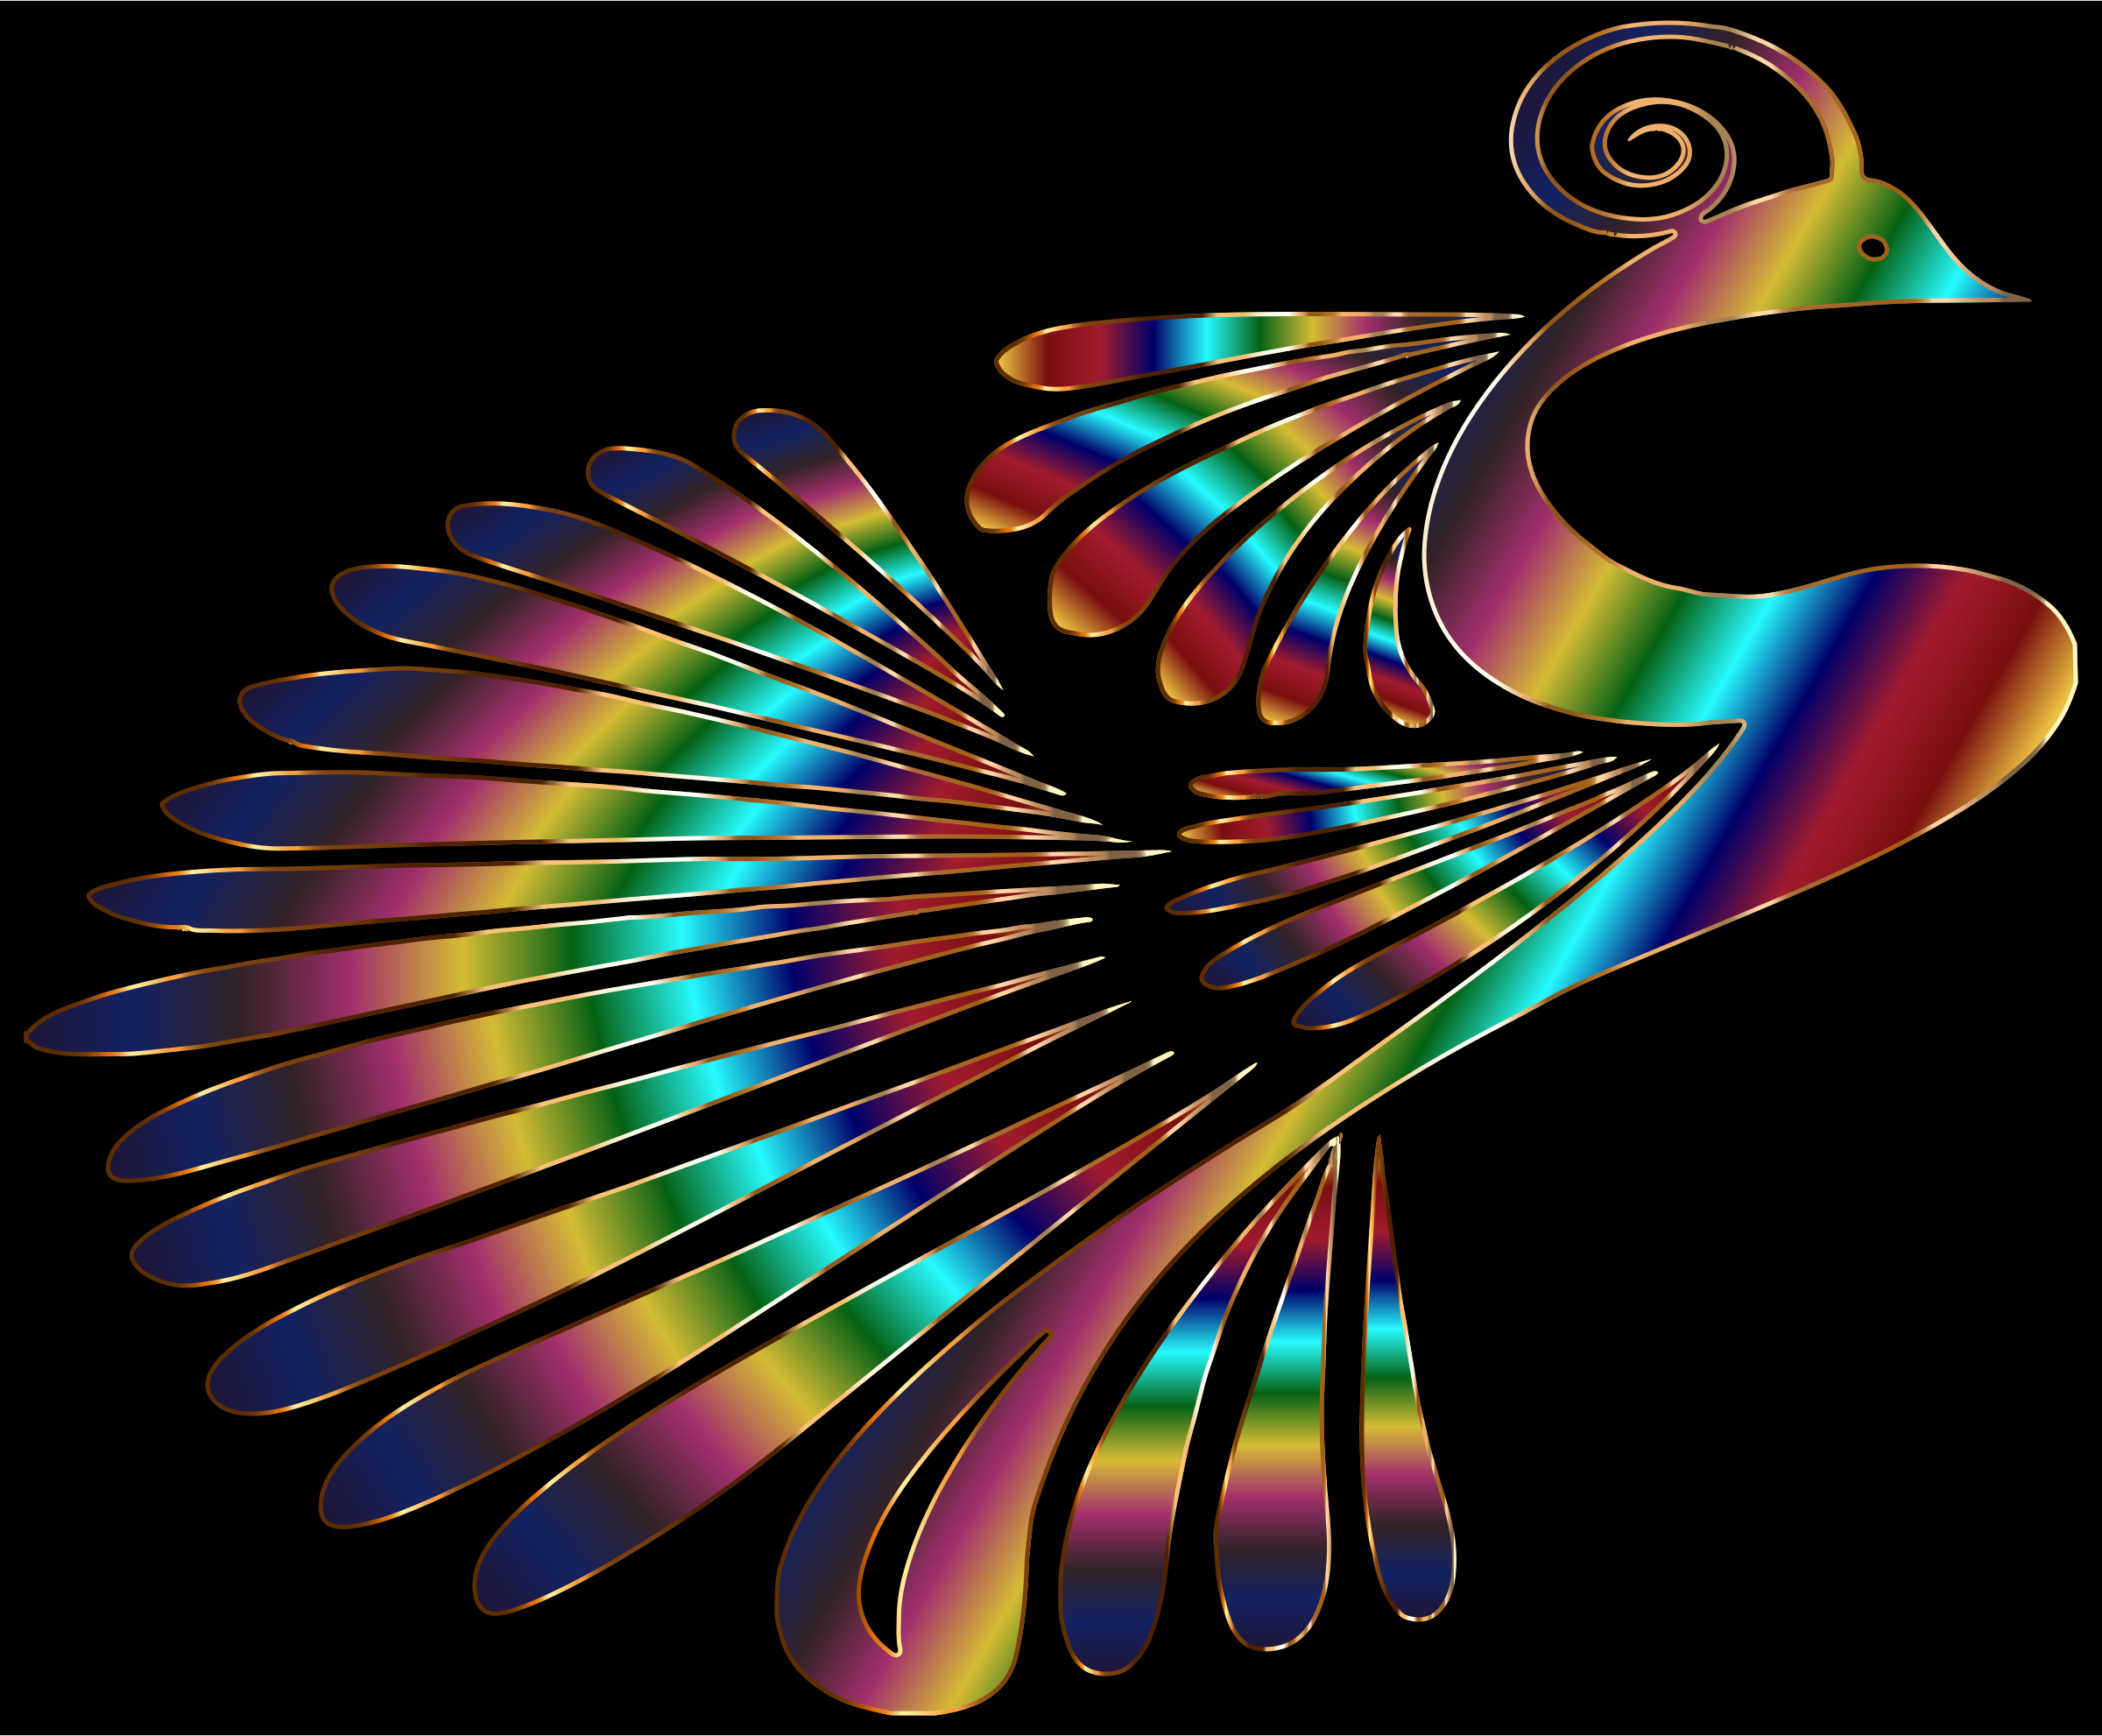 Colorful Stylized Peacock 7 by GDJ